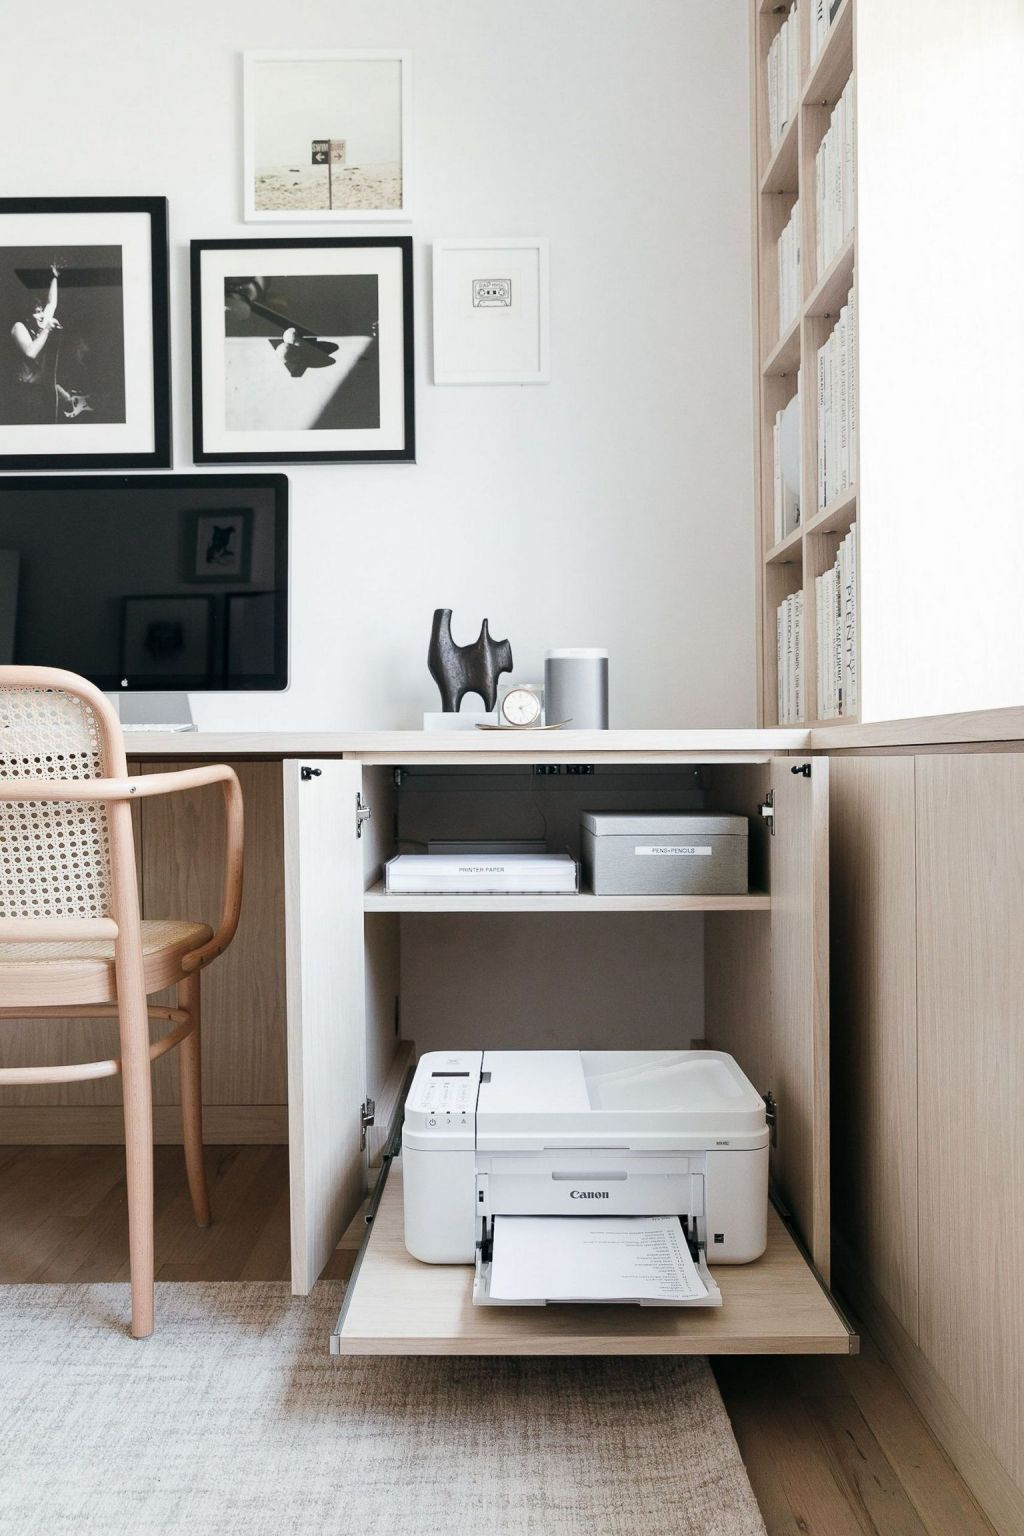 Home Office Design Ideas 1 In 2020 Home Office Design Home Office Space Home Office Decor